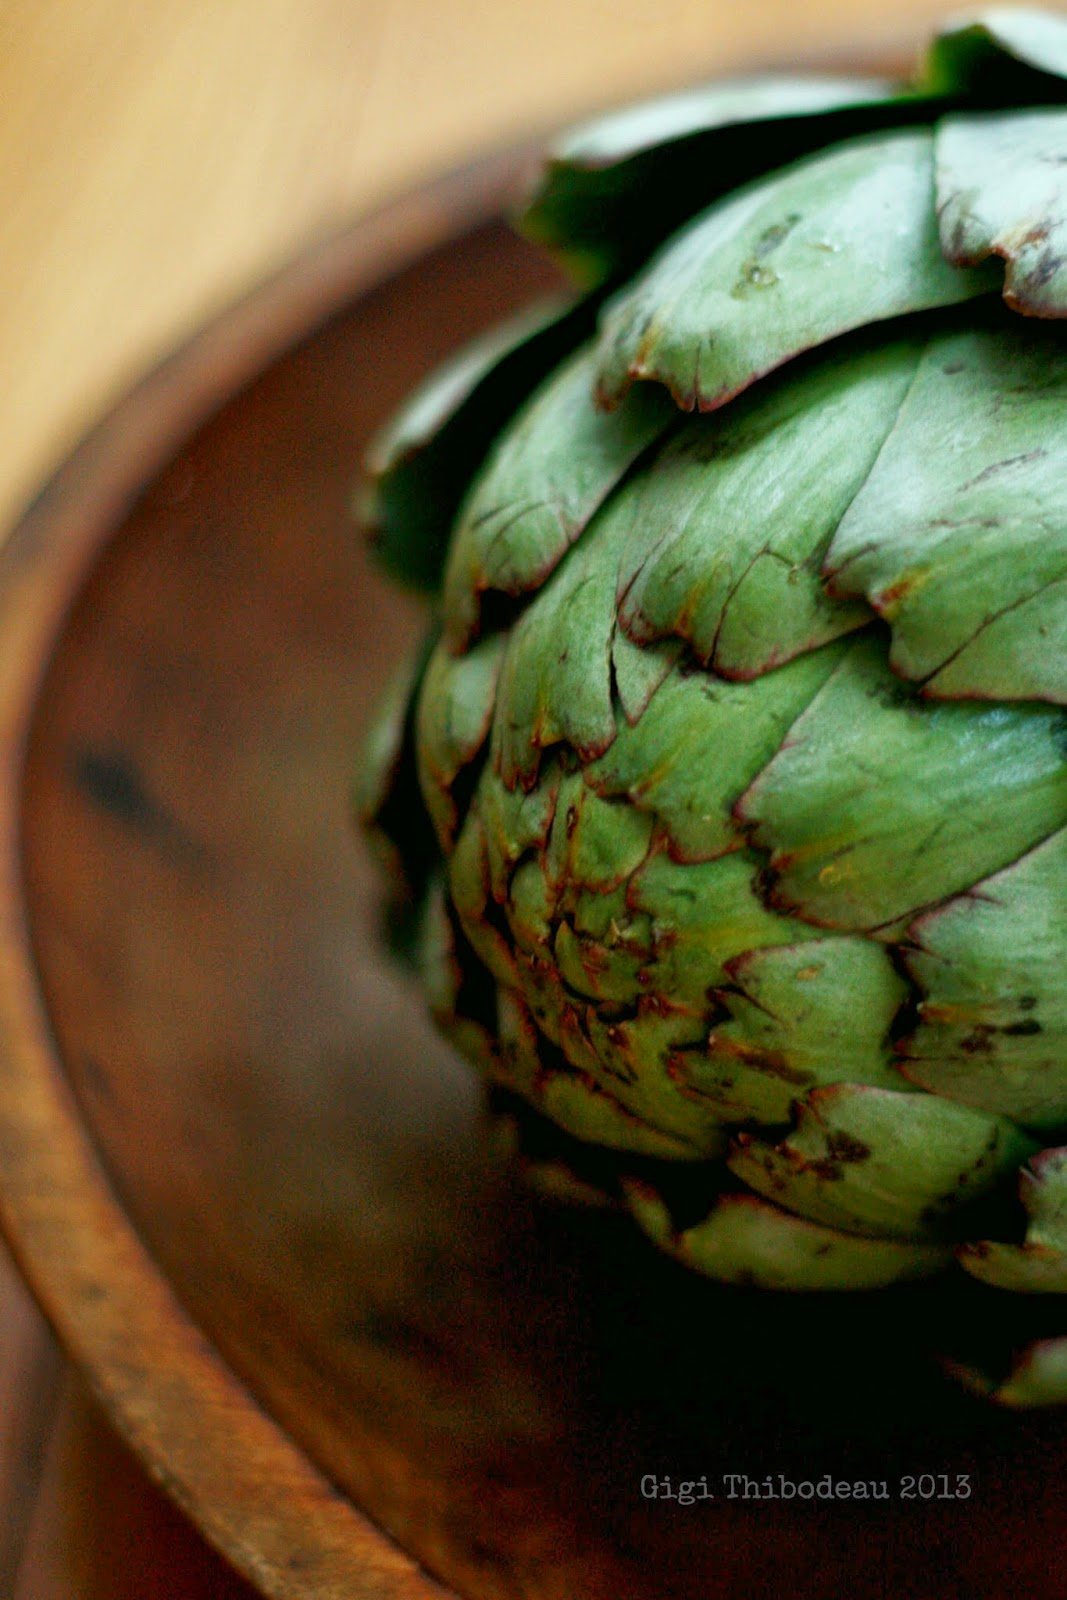 artichokes essay Artichokes are the edible, immature flowers of a cultivated thistle that was  introduced  today there are artichokes of all shapes and sizes, and color  if  i don't have time to write an essay, i can just get the pertinent subscriber  information out.